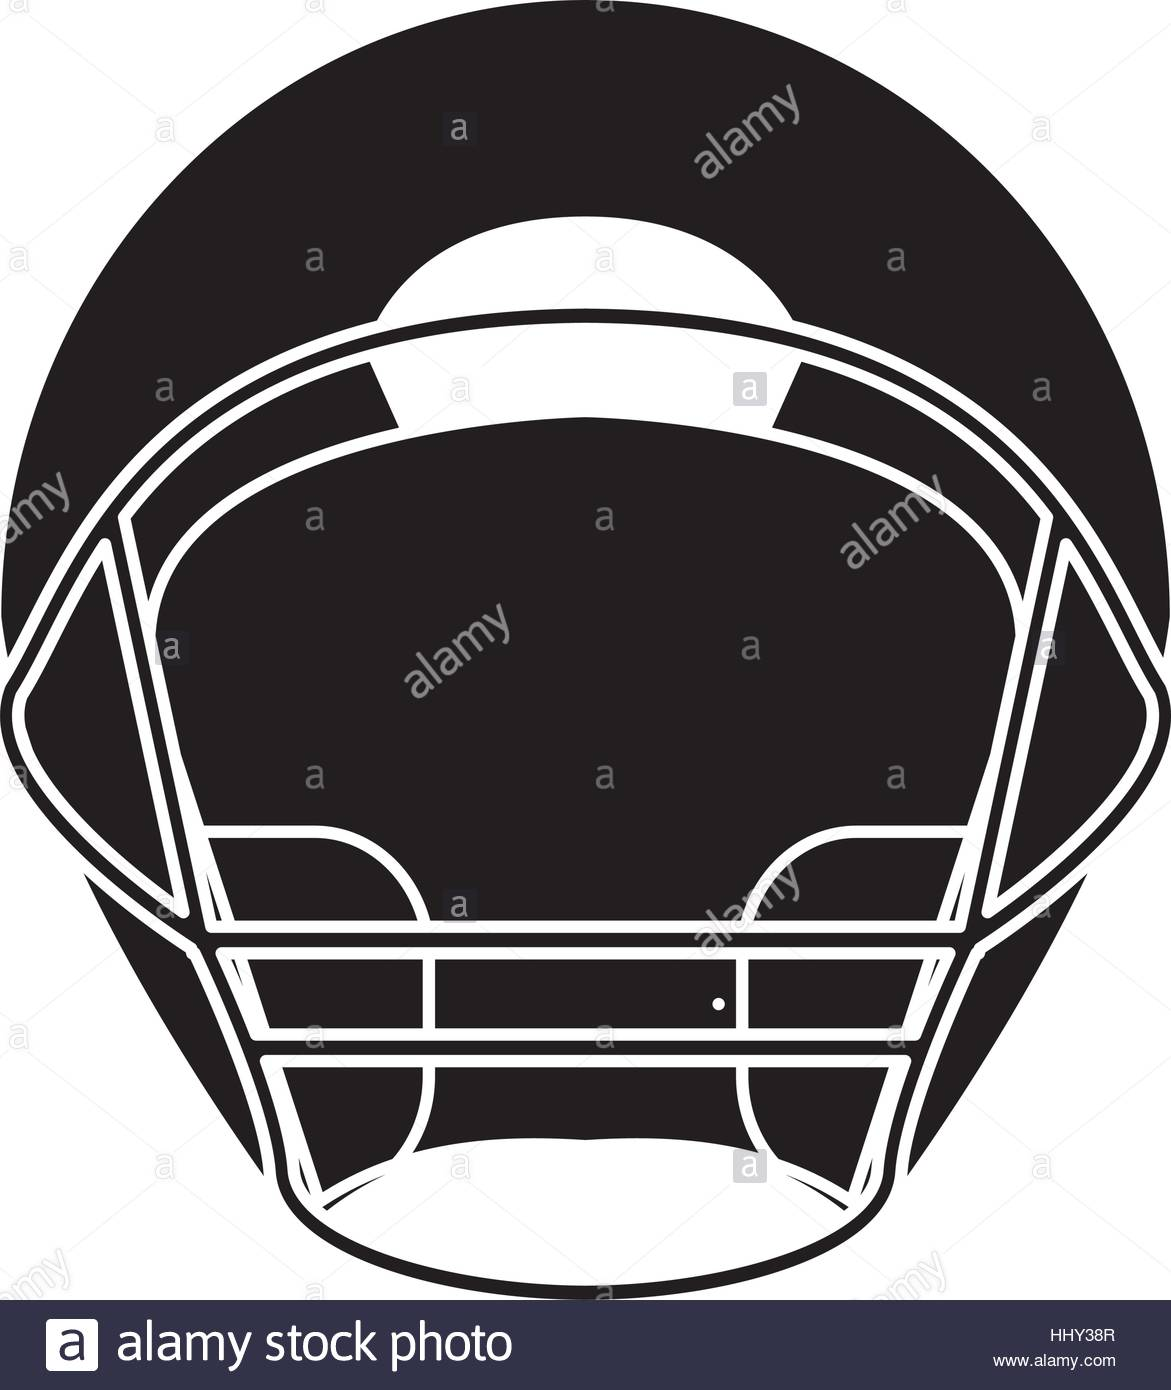 1171x1390 Silhouette Helmet American Football Front View Stock Vector Art